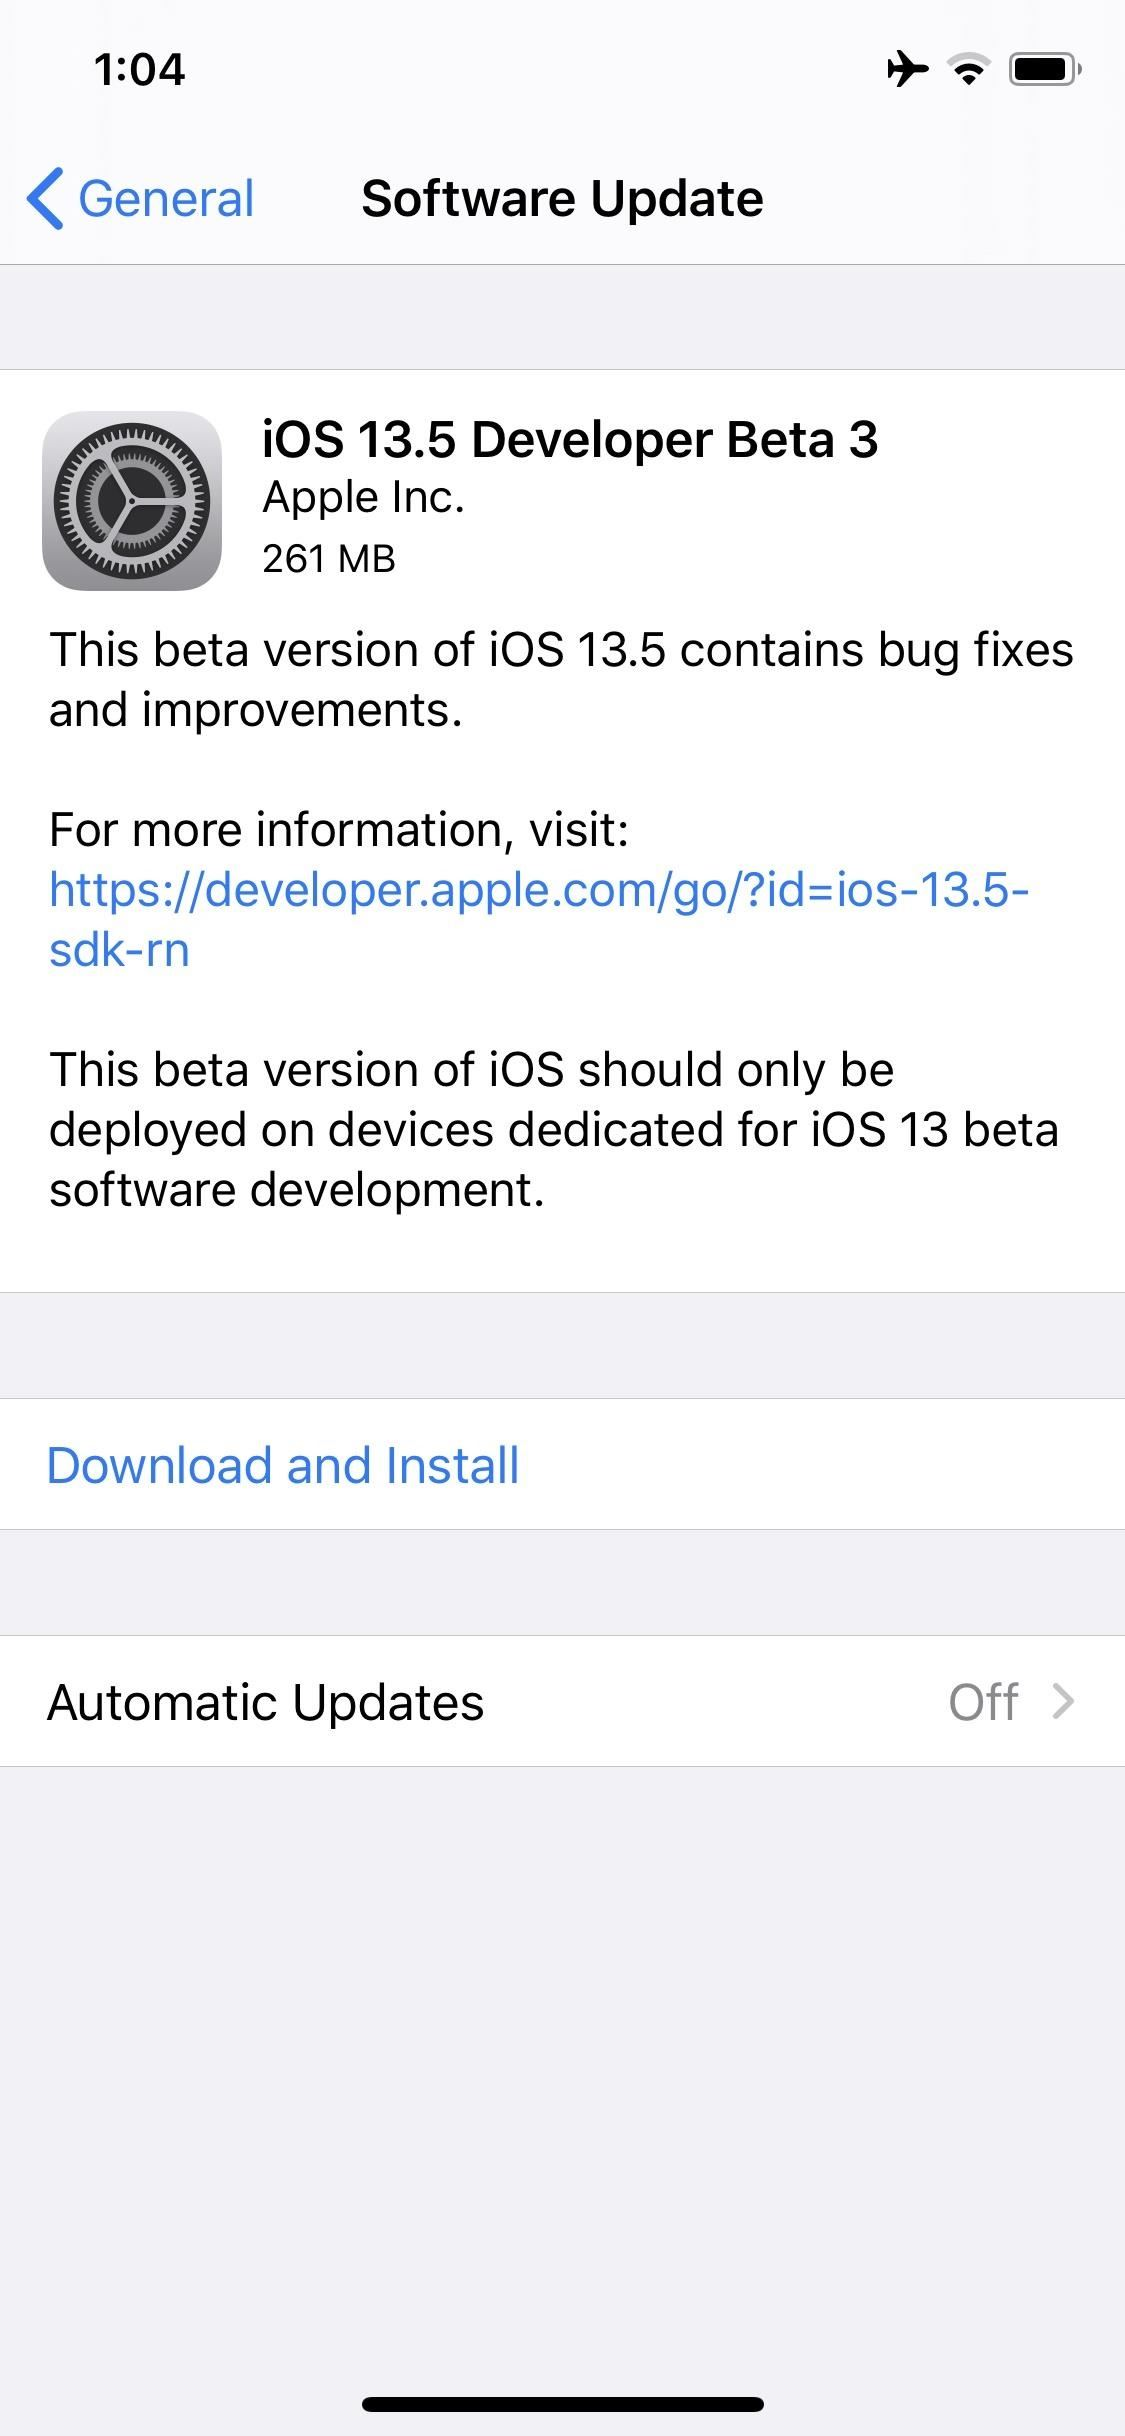 Apple Just Released iOS 13.5 Beta 3 — Yes, 13.5, Not 13.4.5